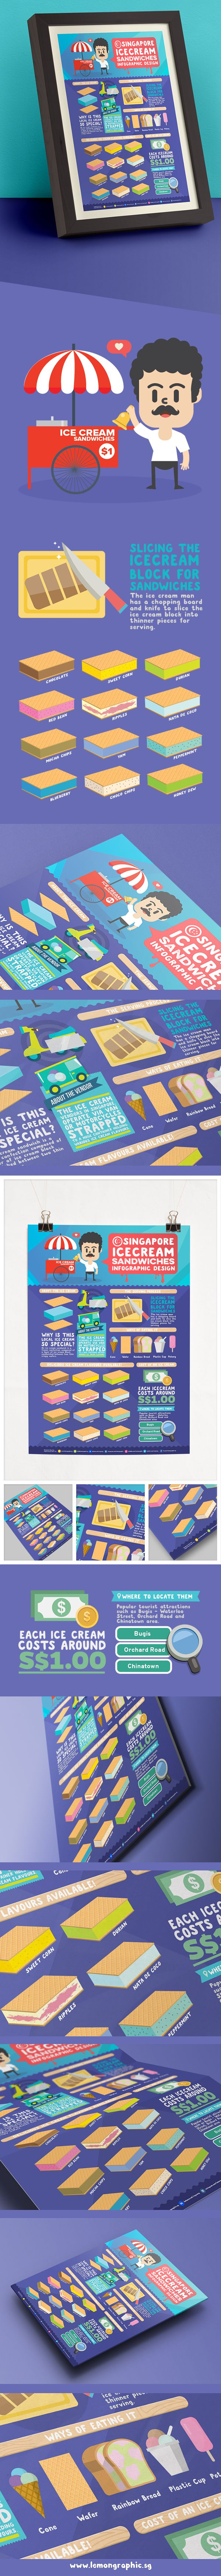 Singapore icecream sandwiches infographic design.Weather is heating up in Singapore? Why not check out what the Singapore ice cream sandwich is about, the delicious flavours and different ways of savouring them.